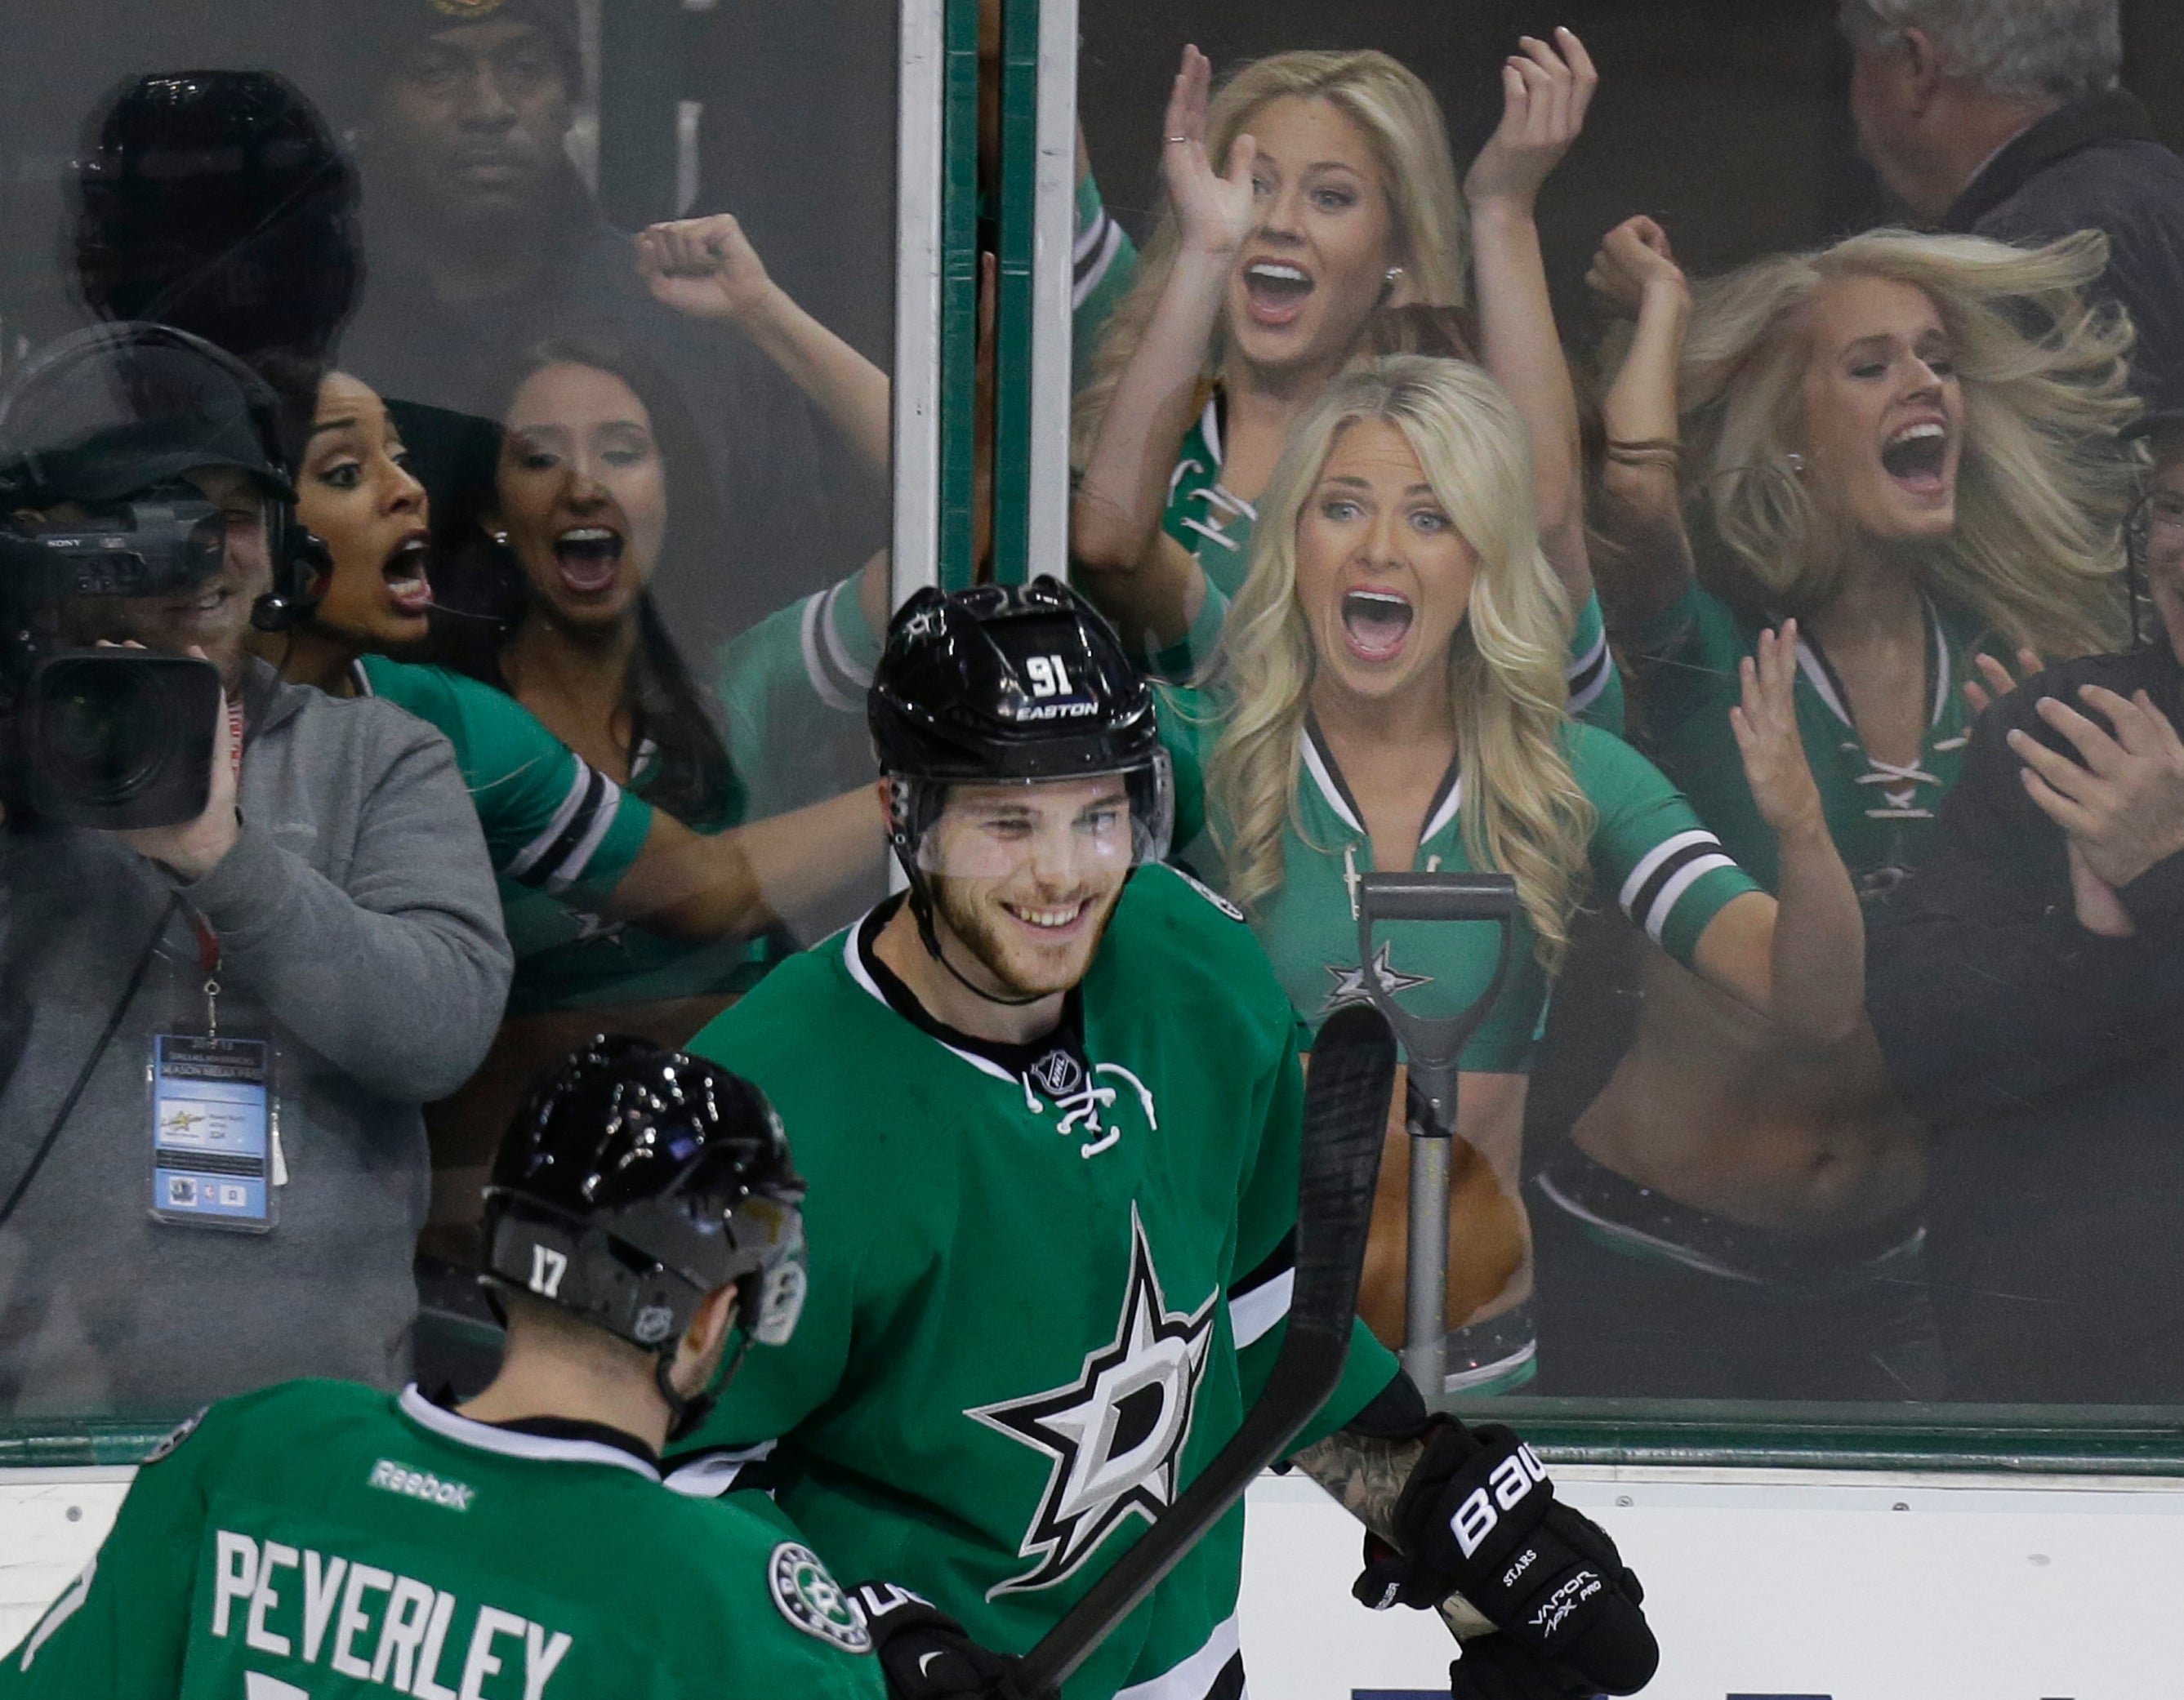 Tyler Seguin's Hat Trick Makes Ice Girls Flip Out